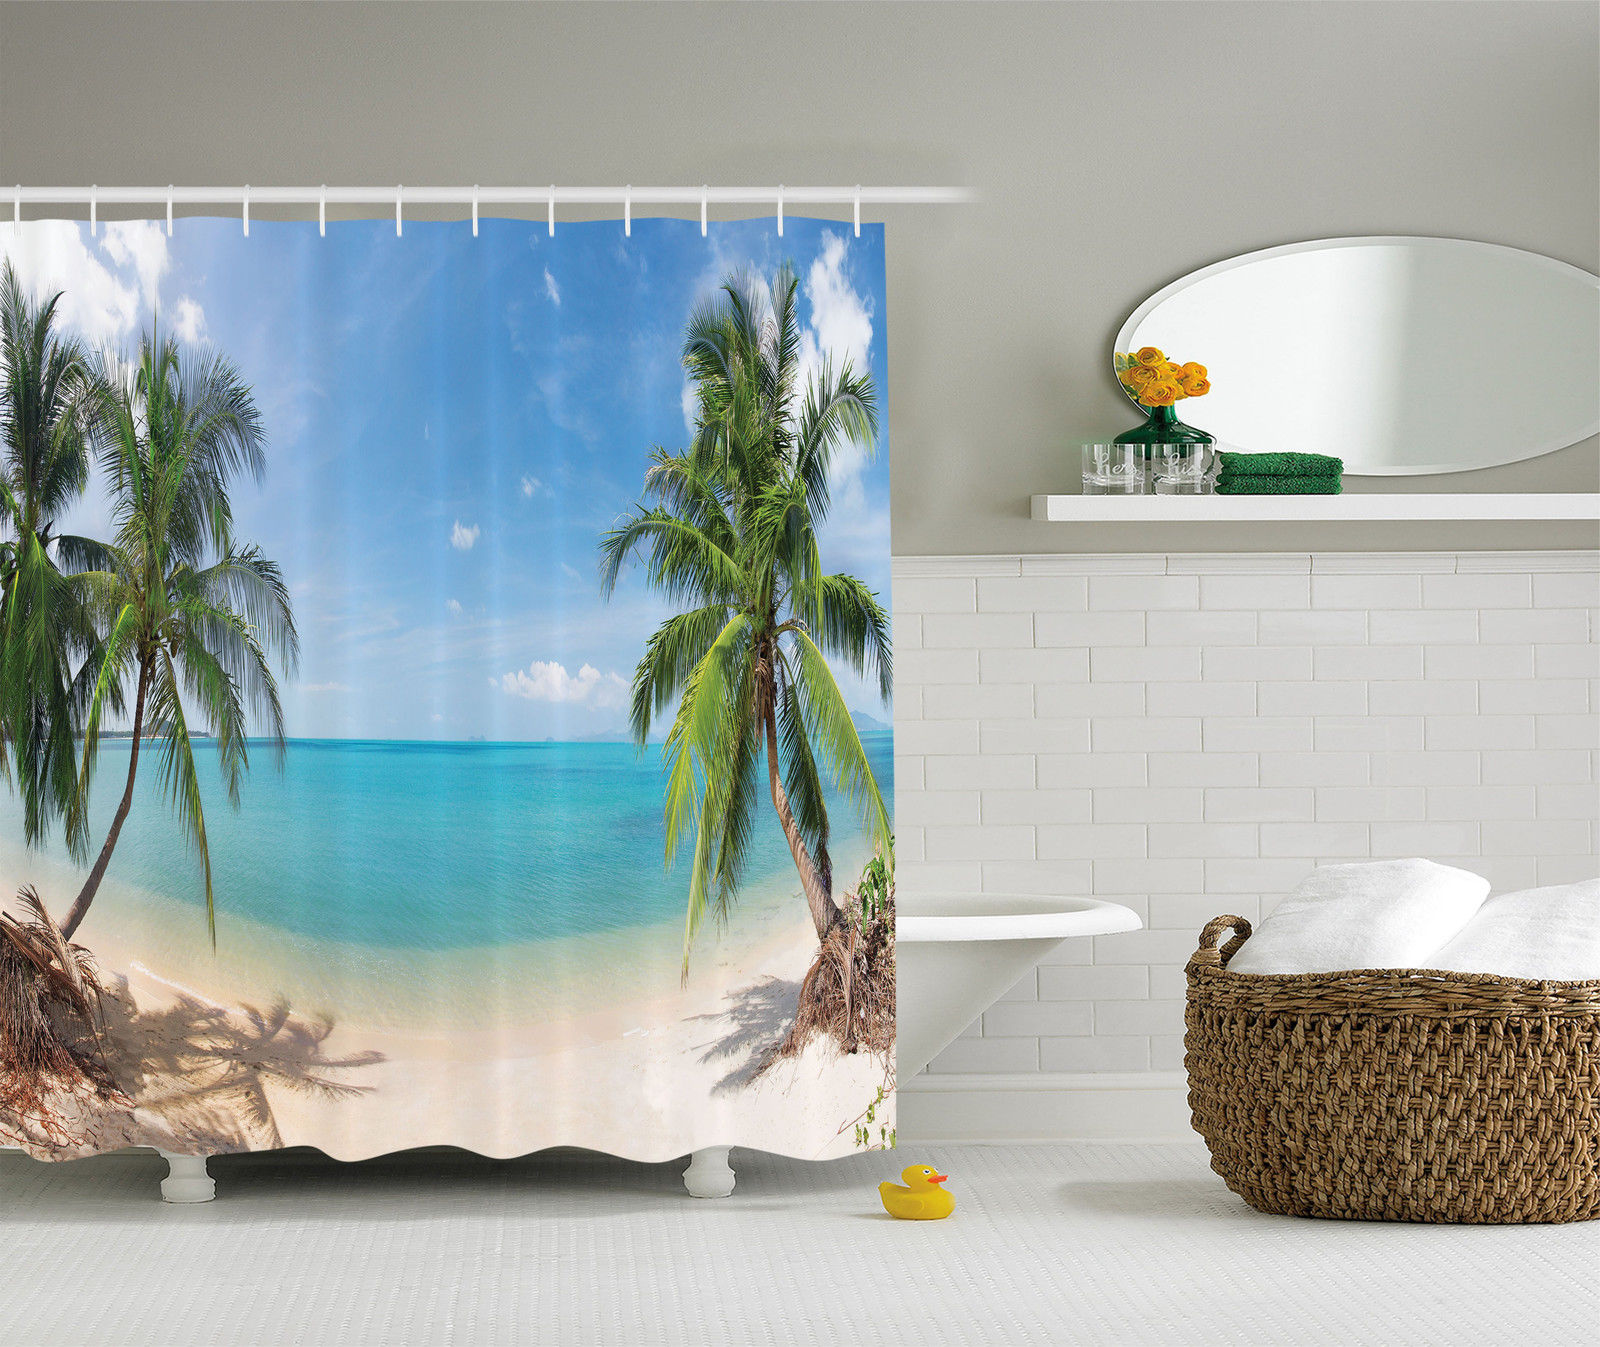 Ocean Decor Shower Curtain Set, Panoramic Tropical Beach Exotic Sand  Vacations, Bathroom Accessories,